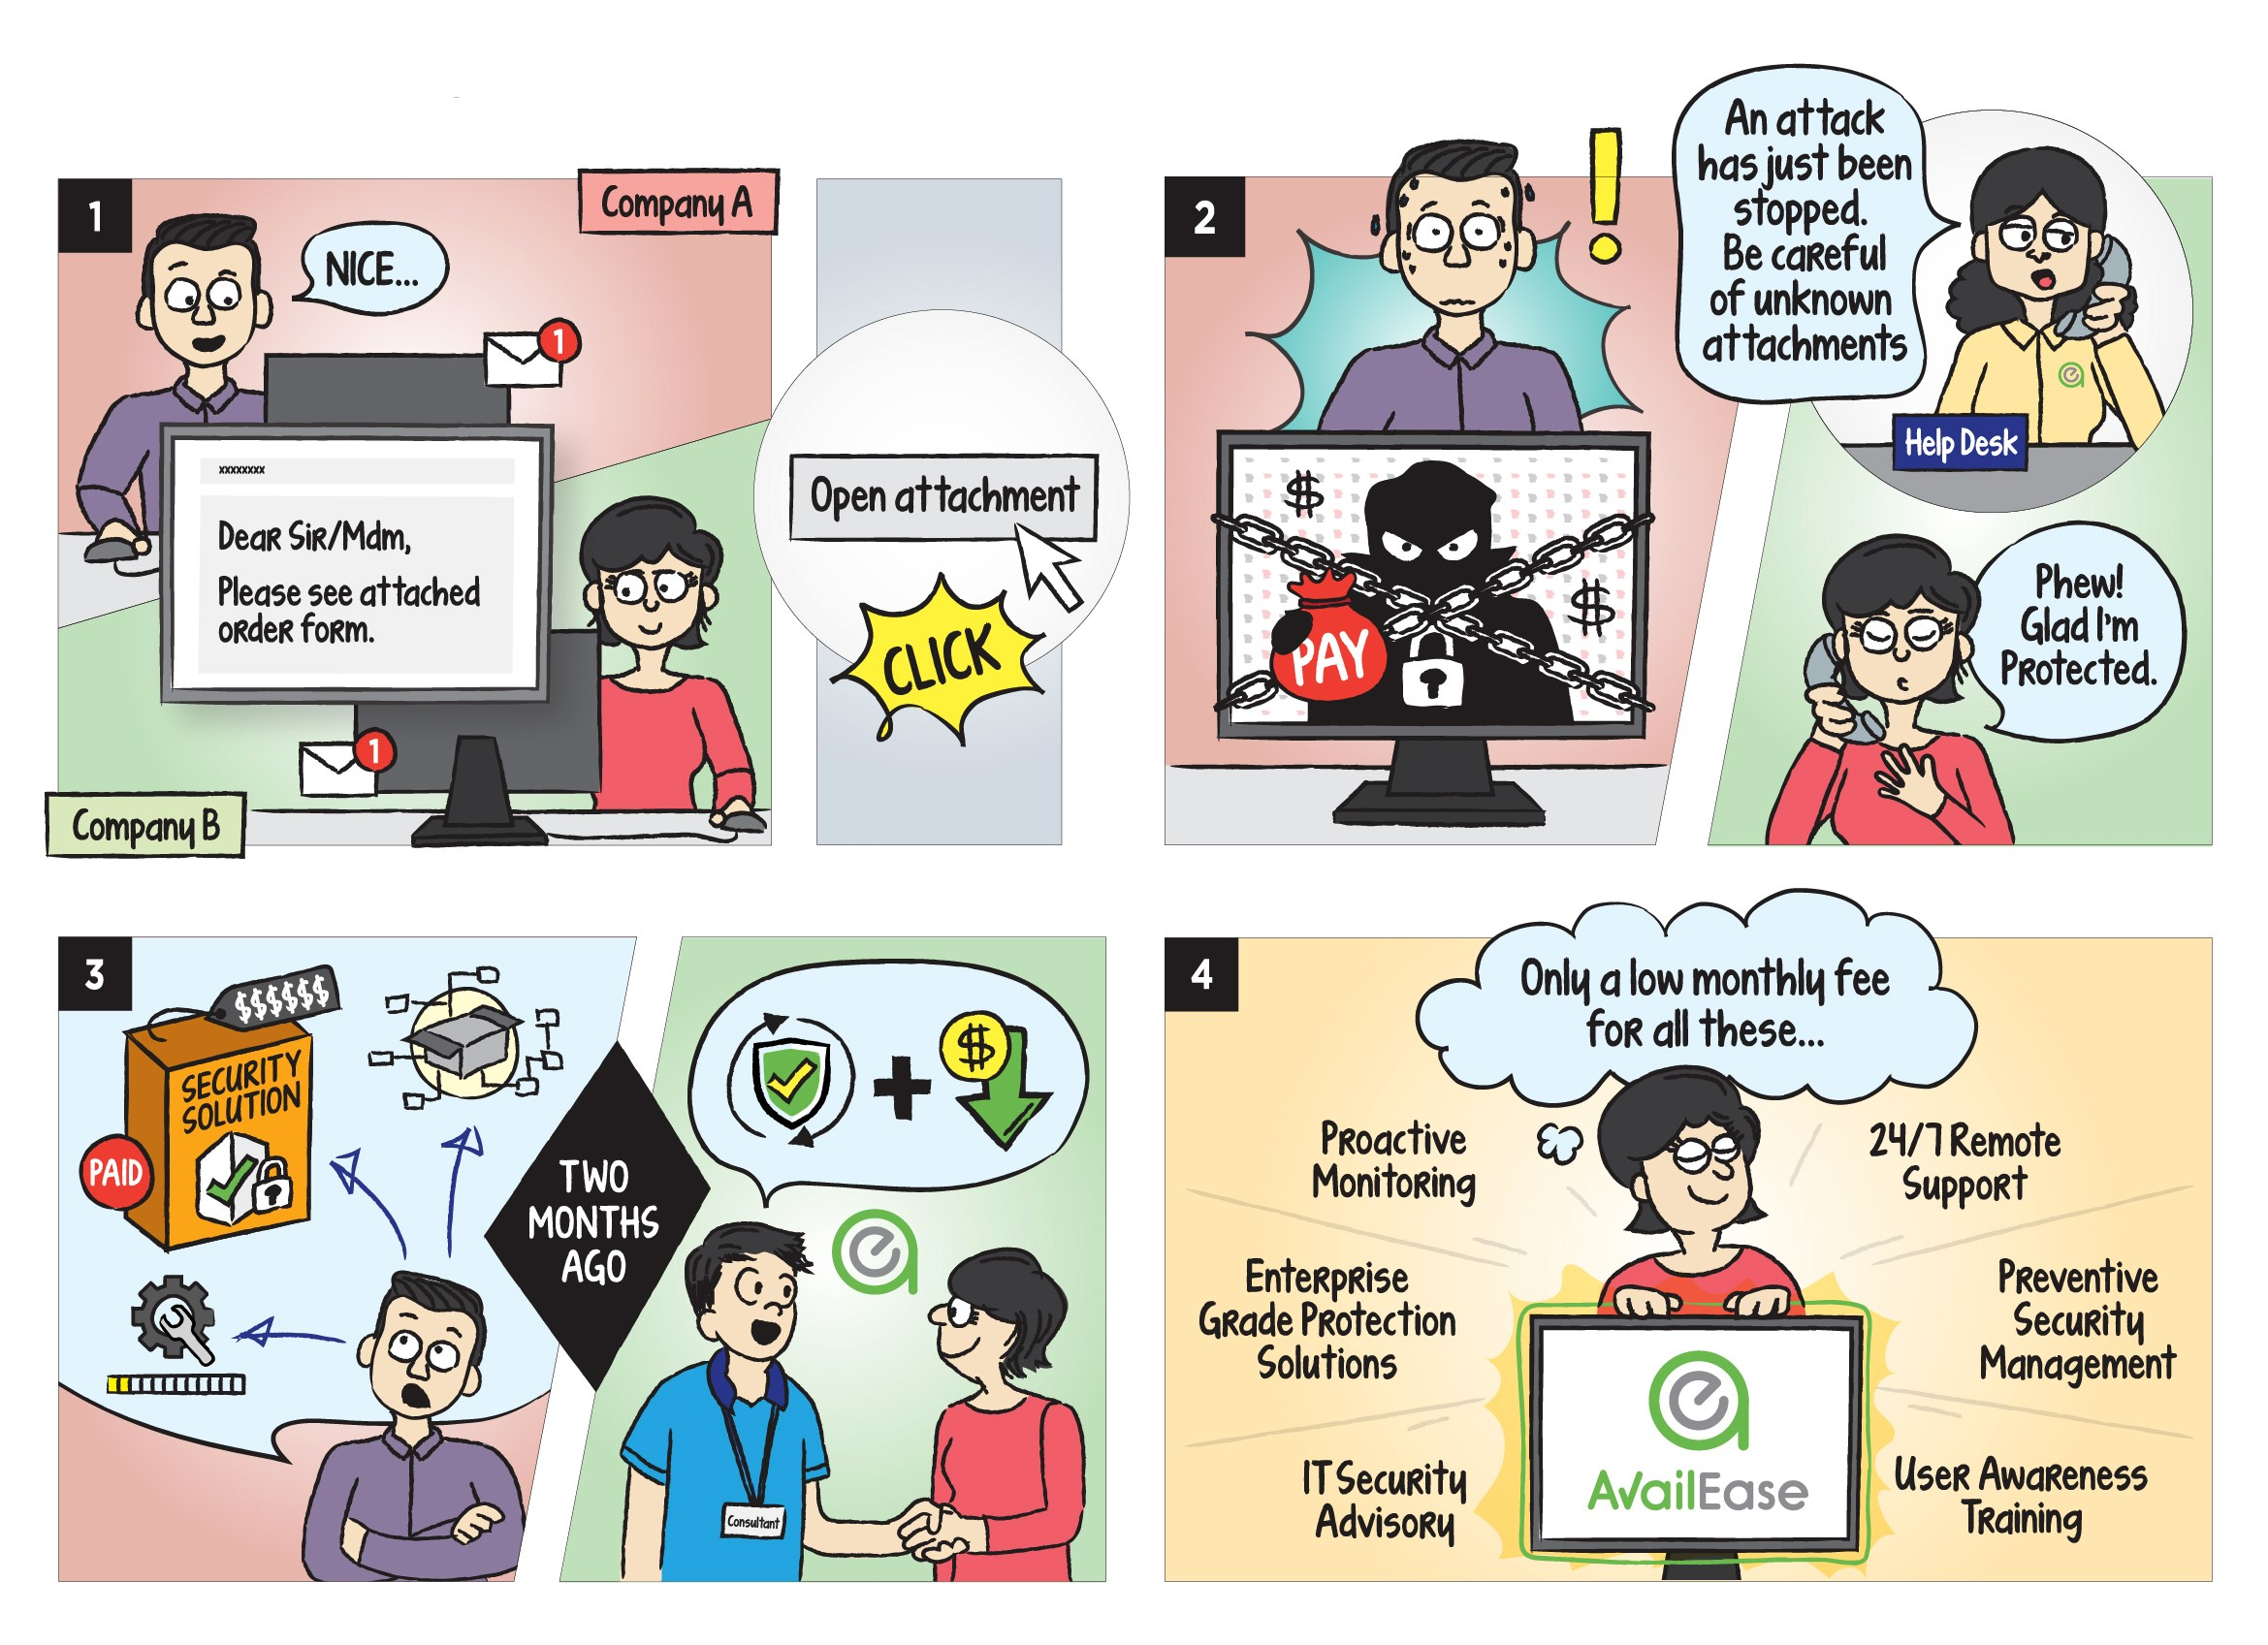 Comic Strip_Managed security